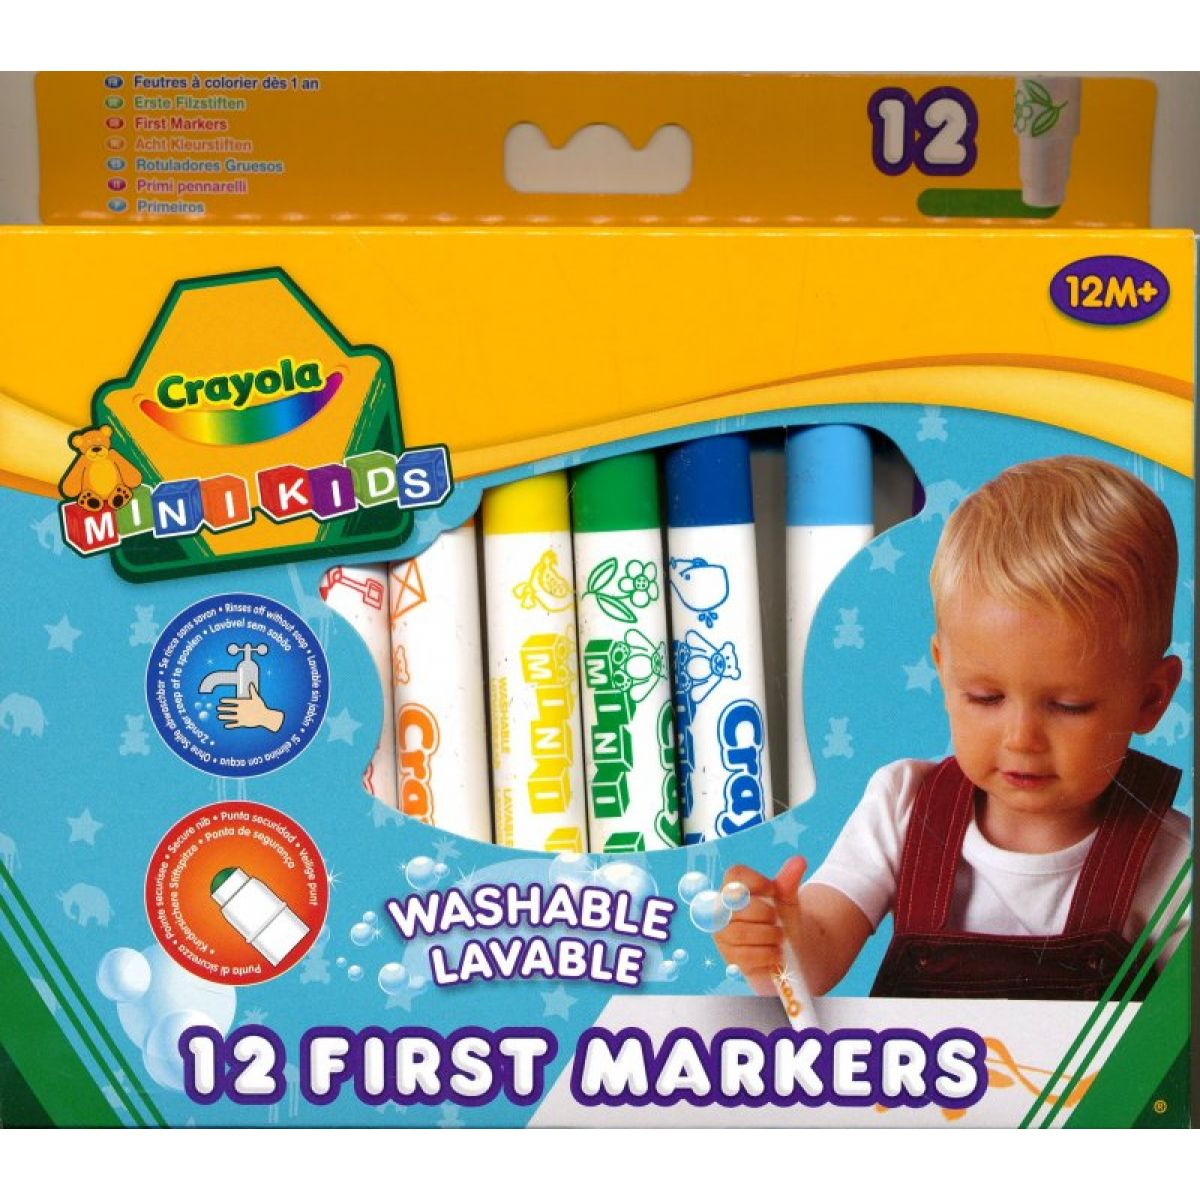 Crayola Mini Kids Fixy 12 ks